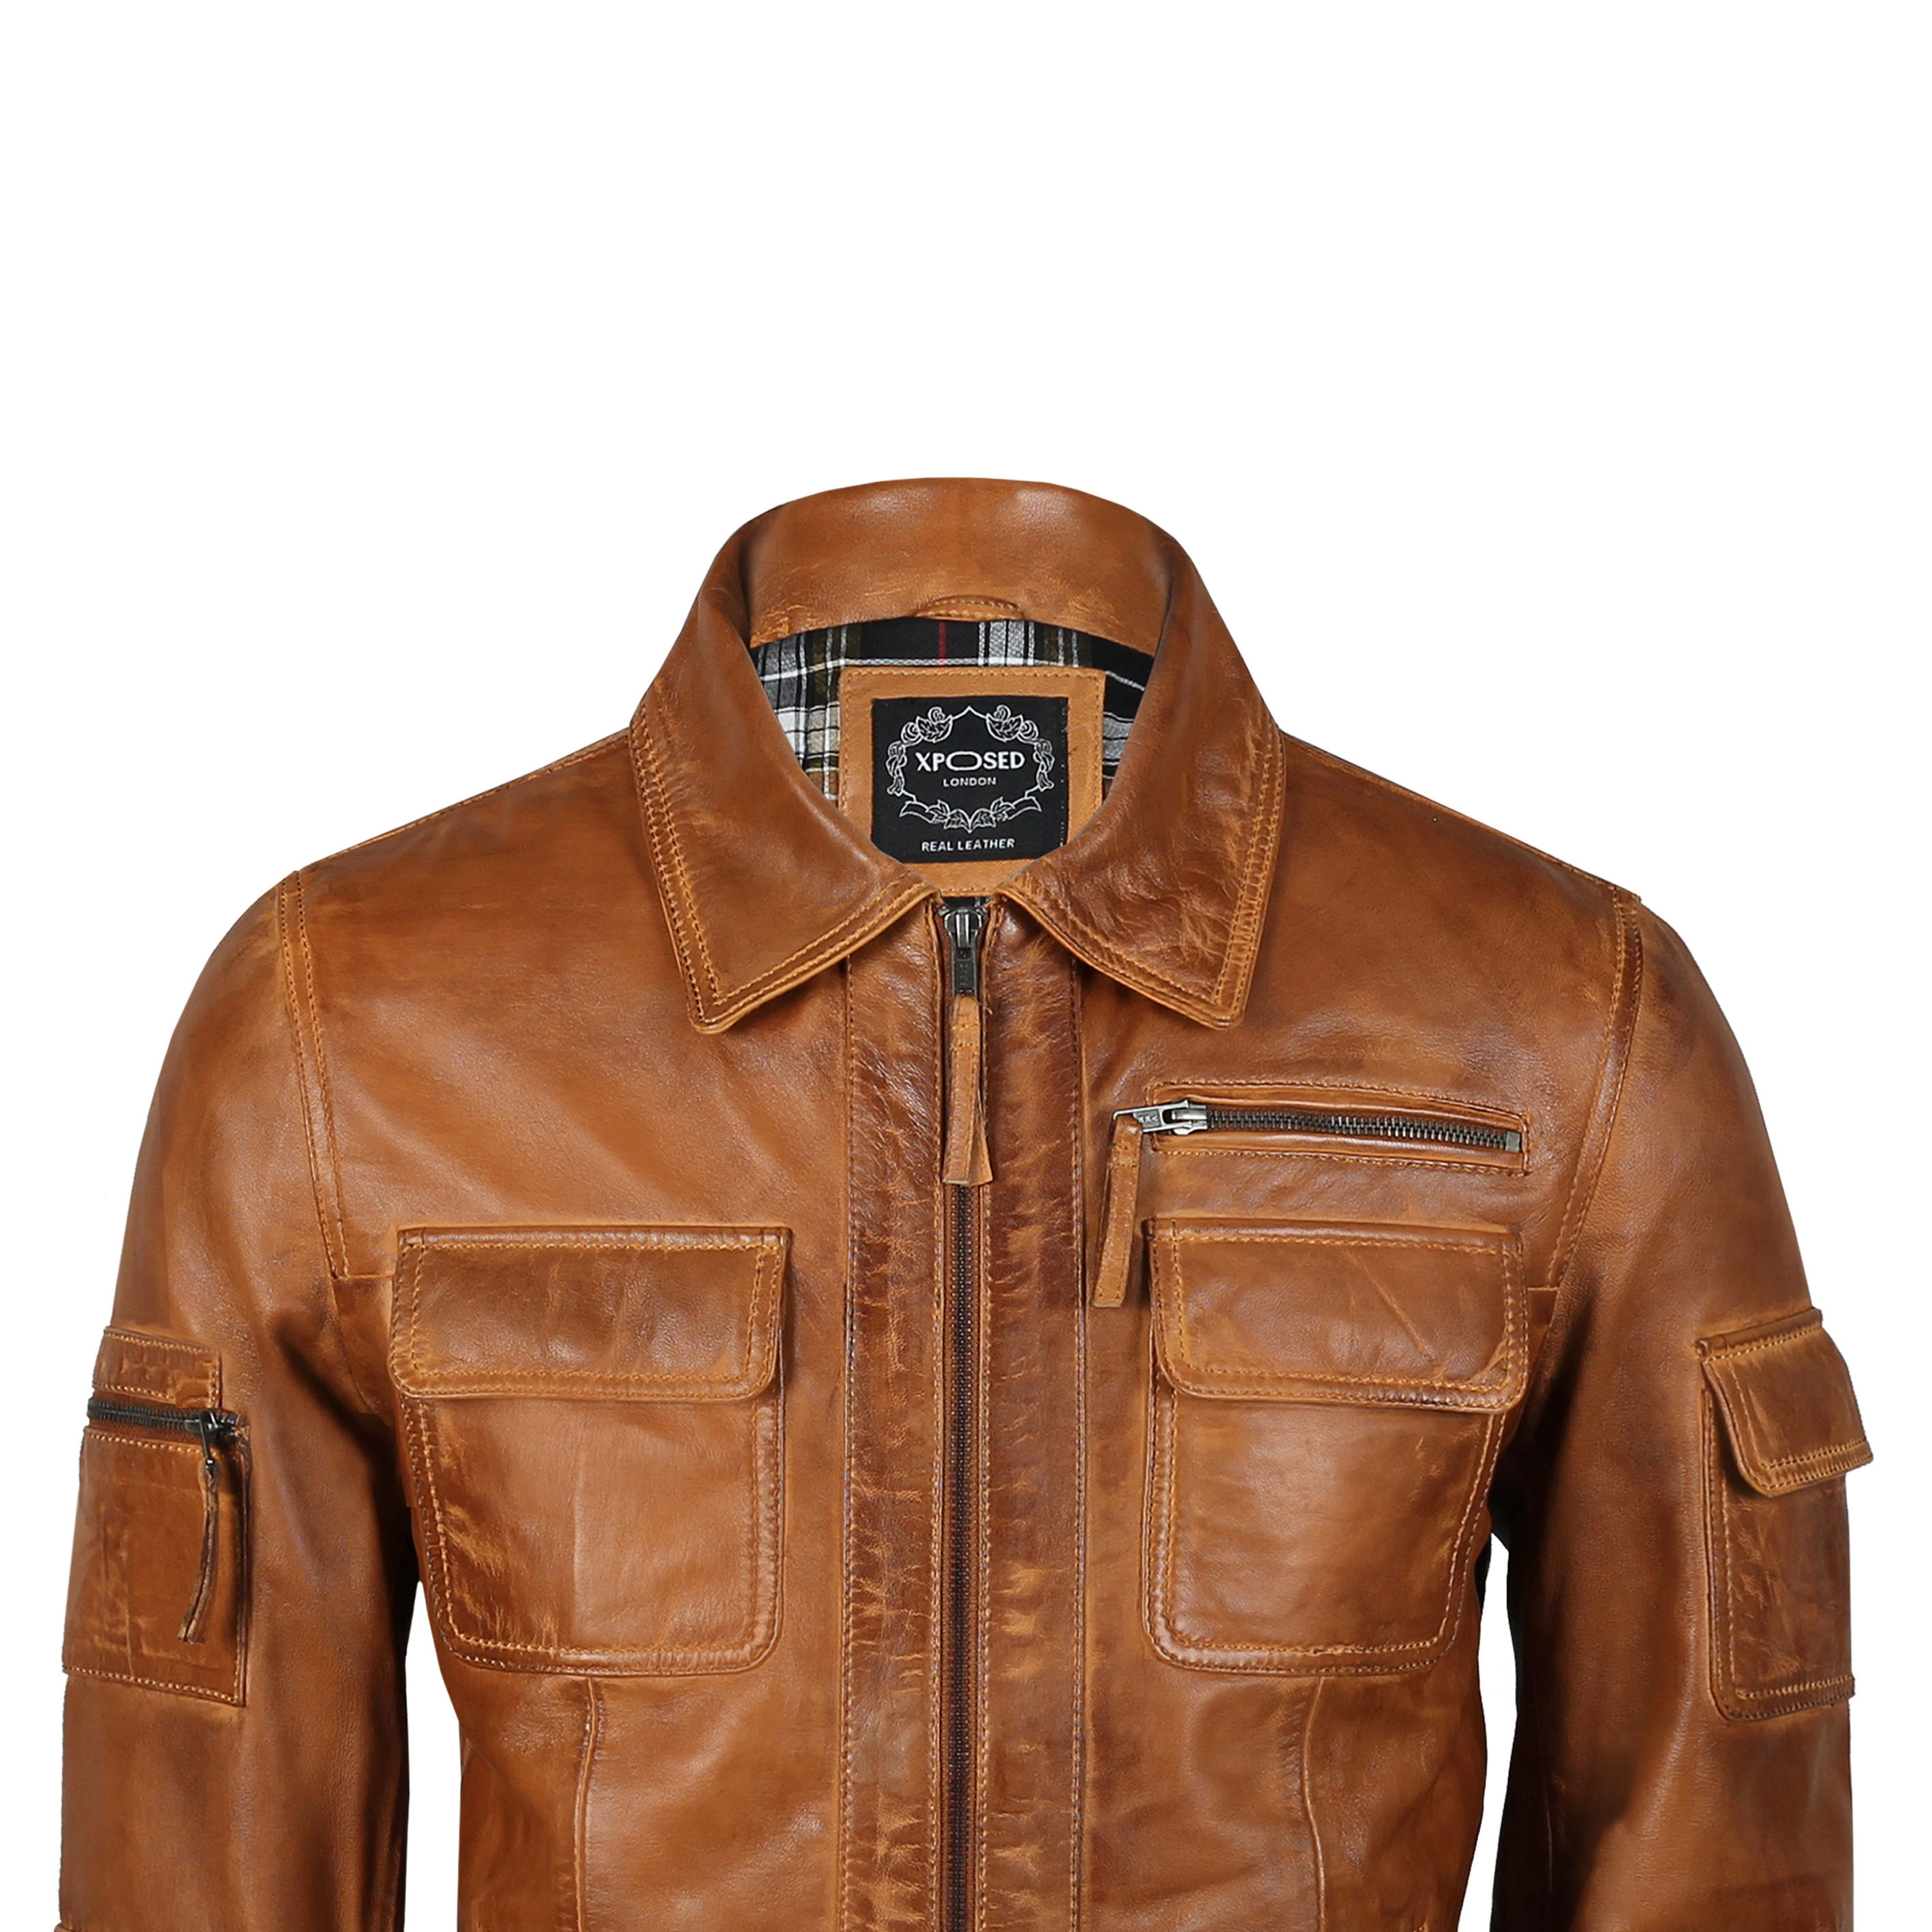 Mens Real Leather Jacket Multi Pockets Retro Collar Biker Style Smart Casual